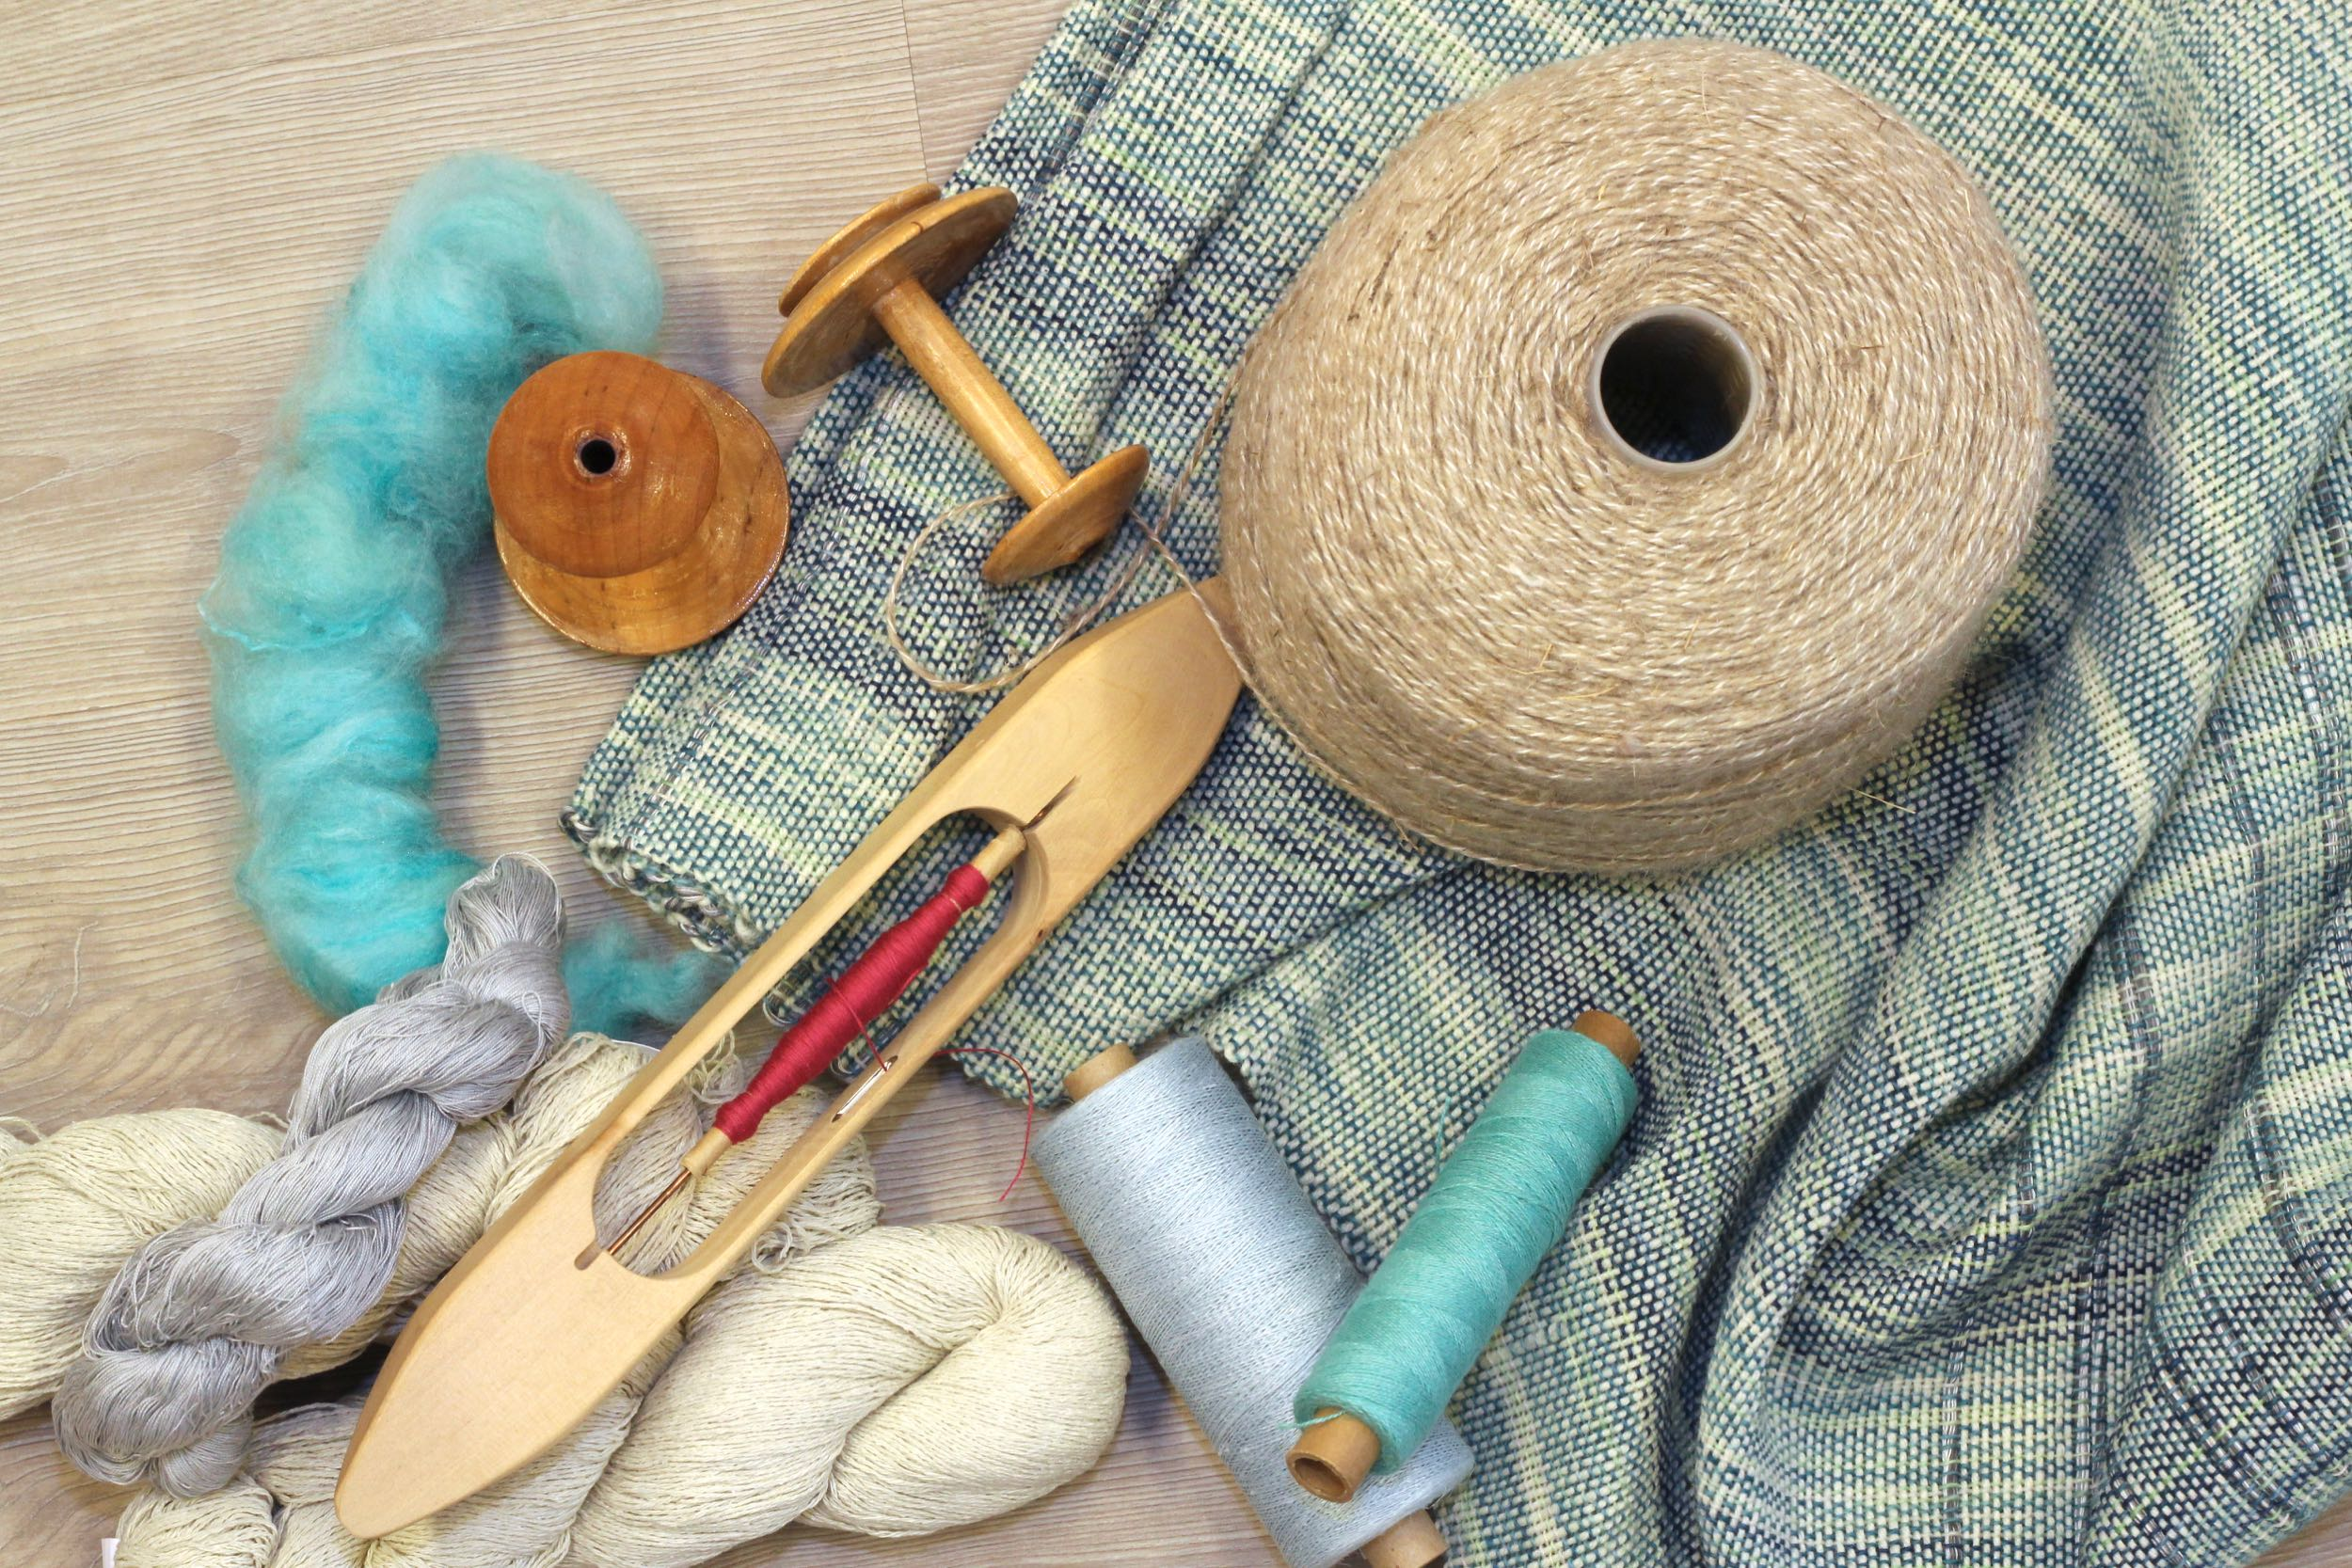 Immerse yourself in the world of weaving!